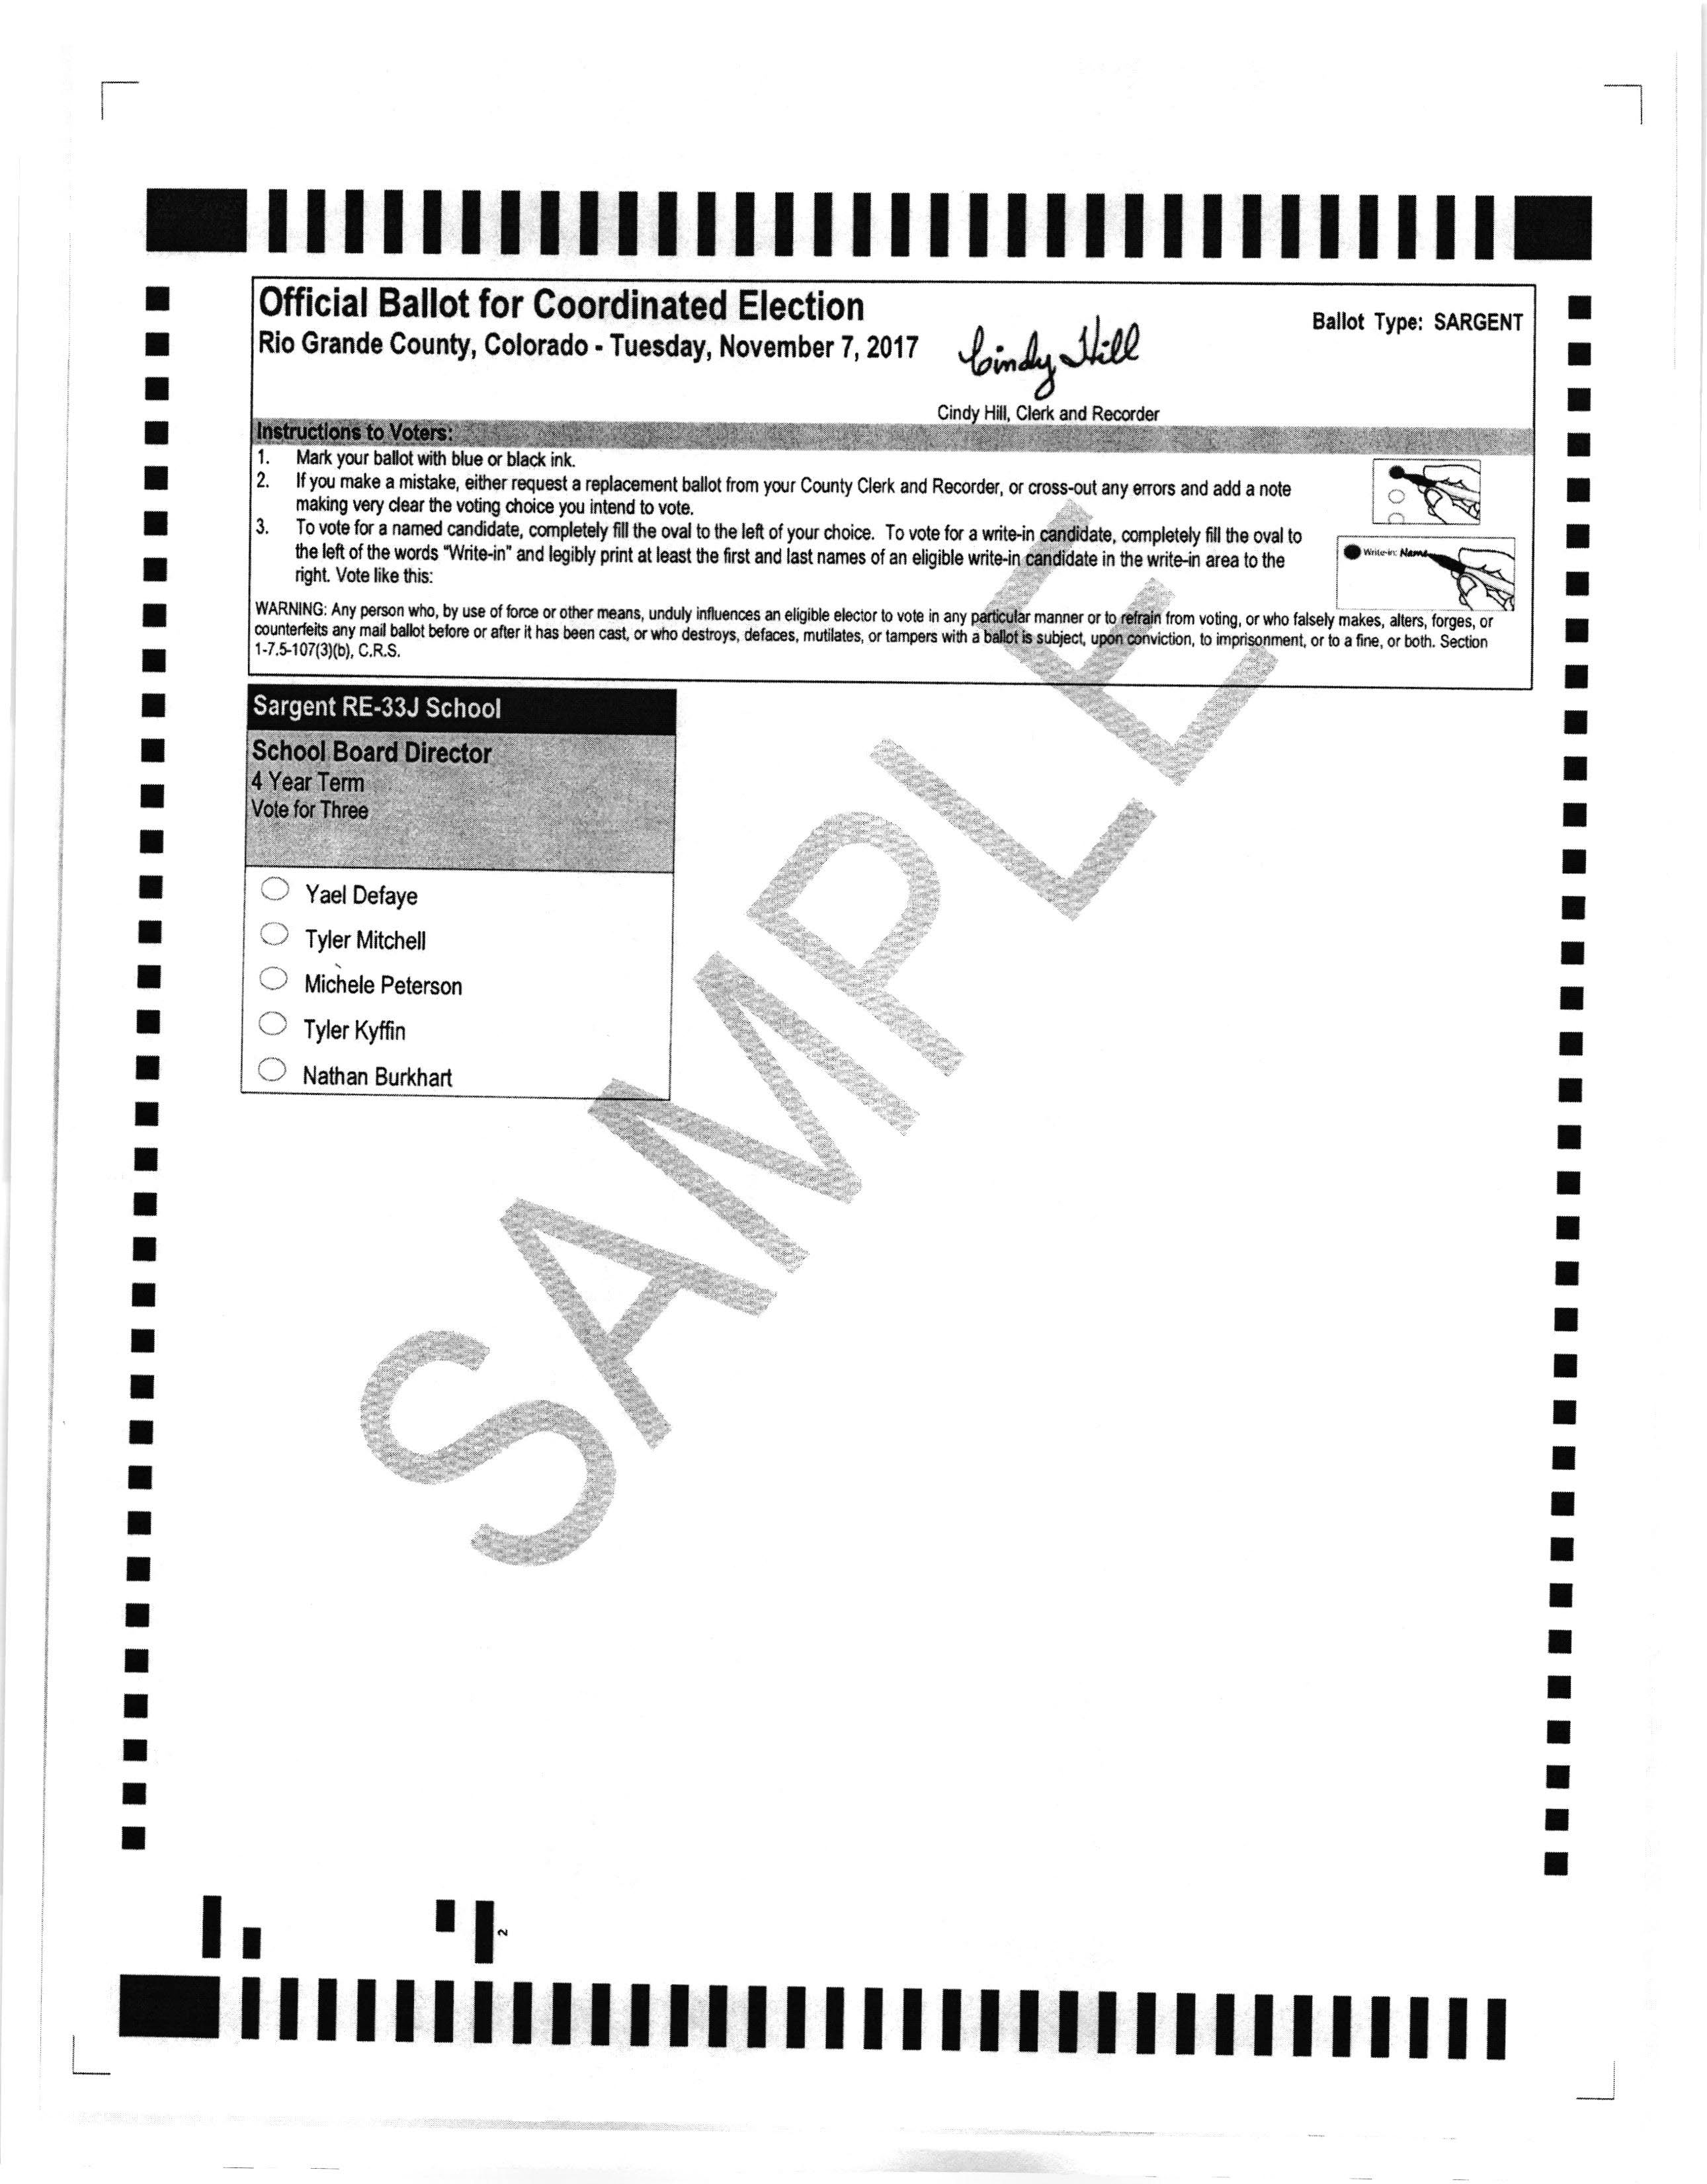 Sargent School Sample Ballot